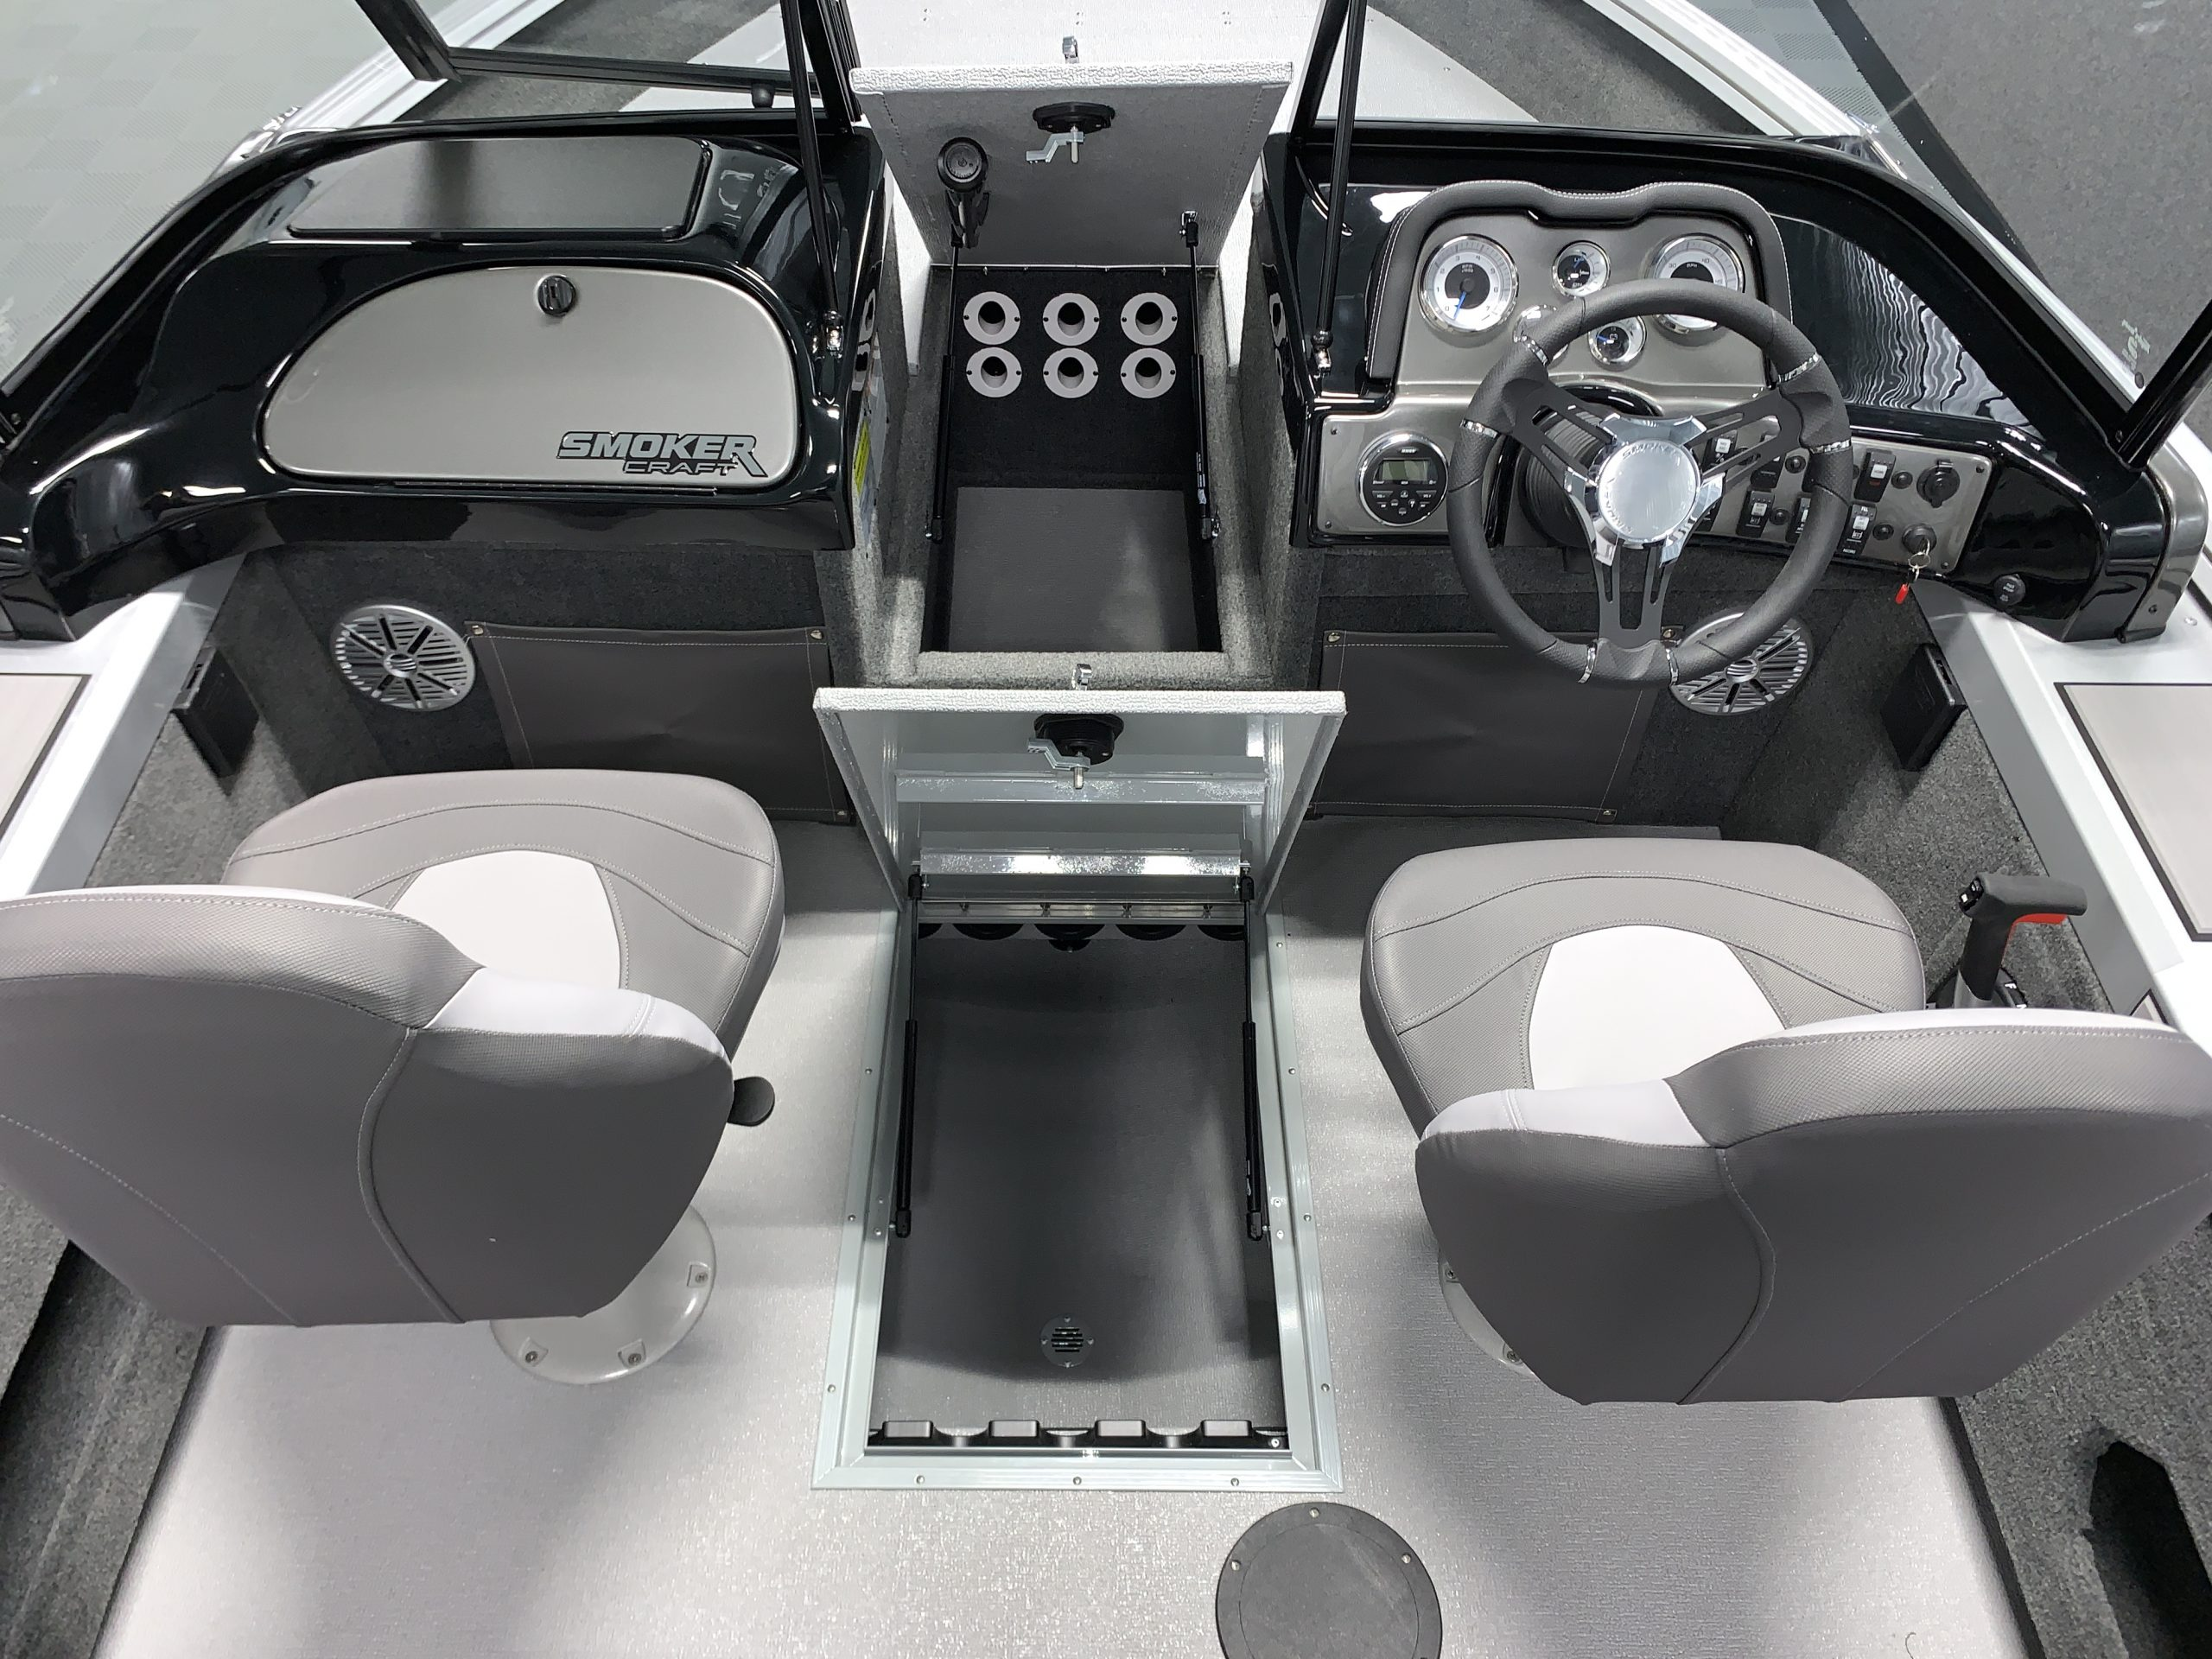 On select models, the boat features top-loading gunnel storage, bow storage, and subfloor storage compartments for fishing rods.